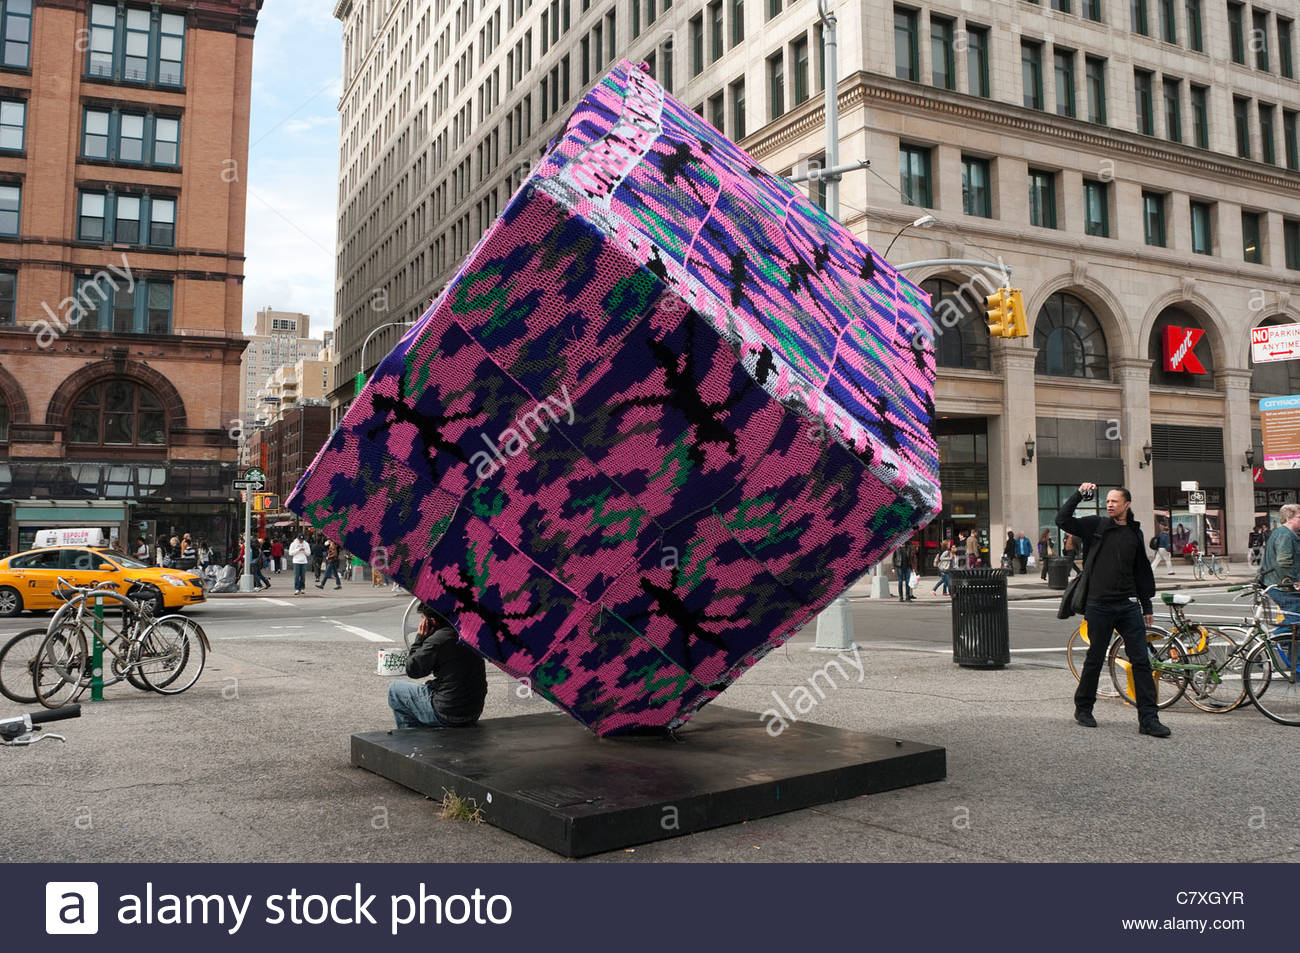 crocheted-covered-cube-alamo-in-astor-pl